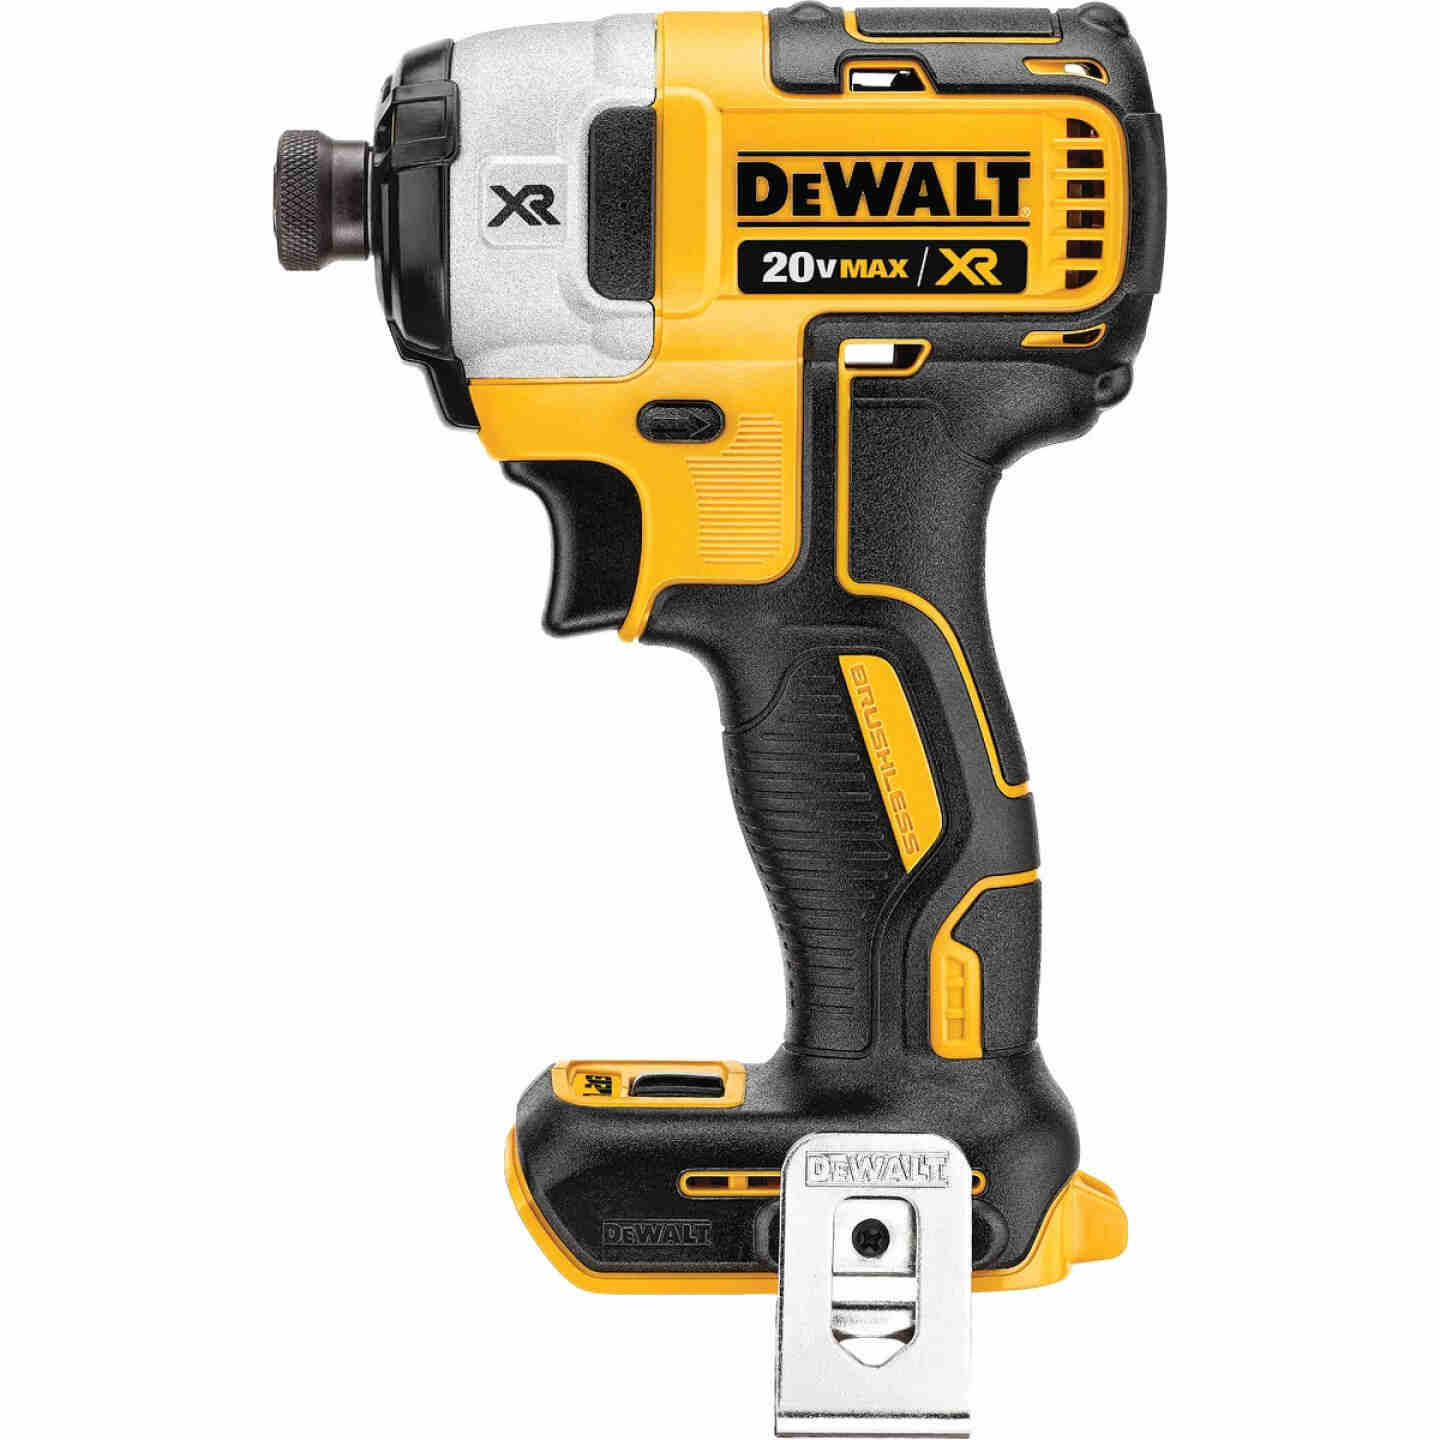 DeWalt 20 Volt MAX XR Lithium-Ion Brushless 1/4 In. Hex Cordless Impact Driver (Bare Tool) Image 1